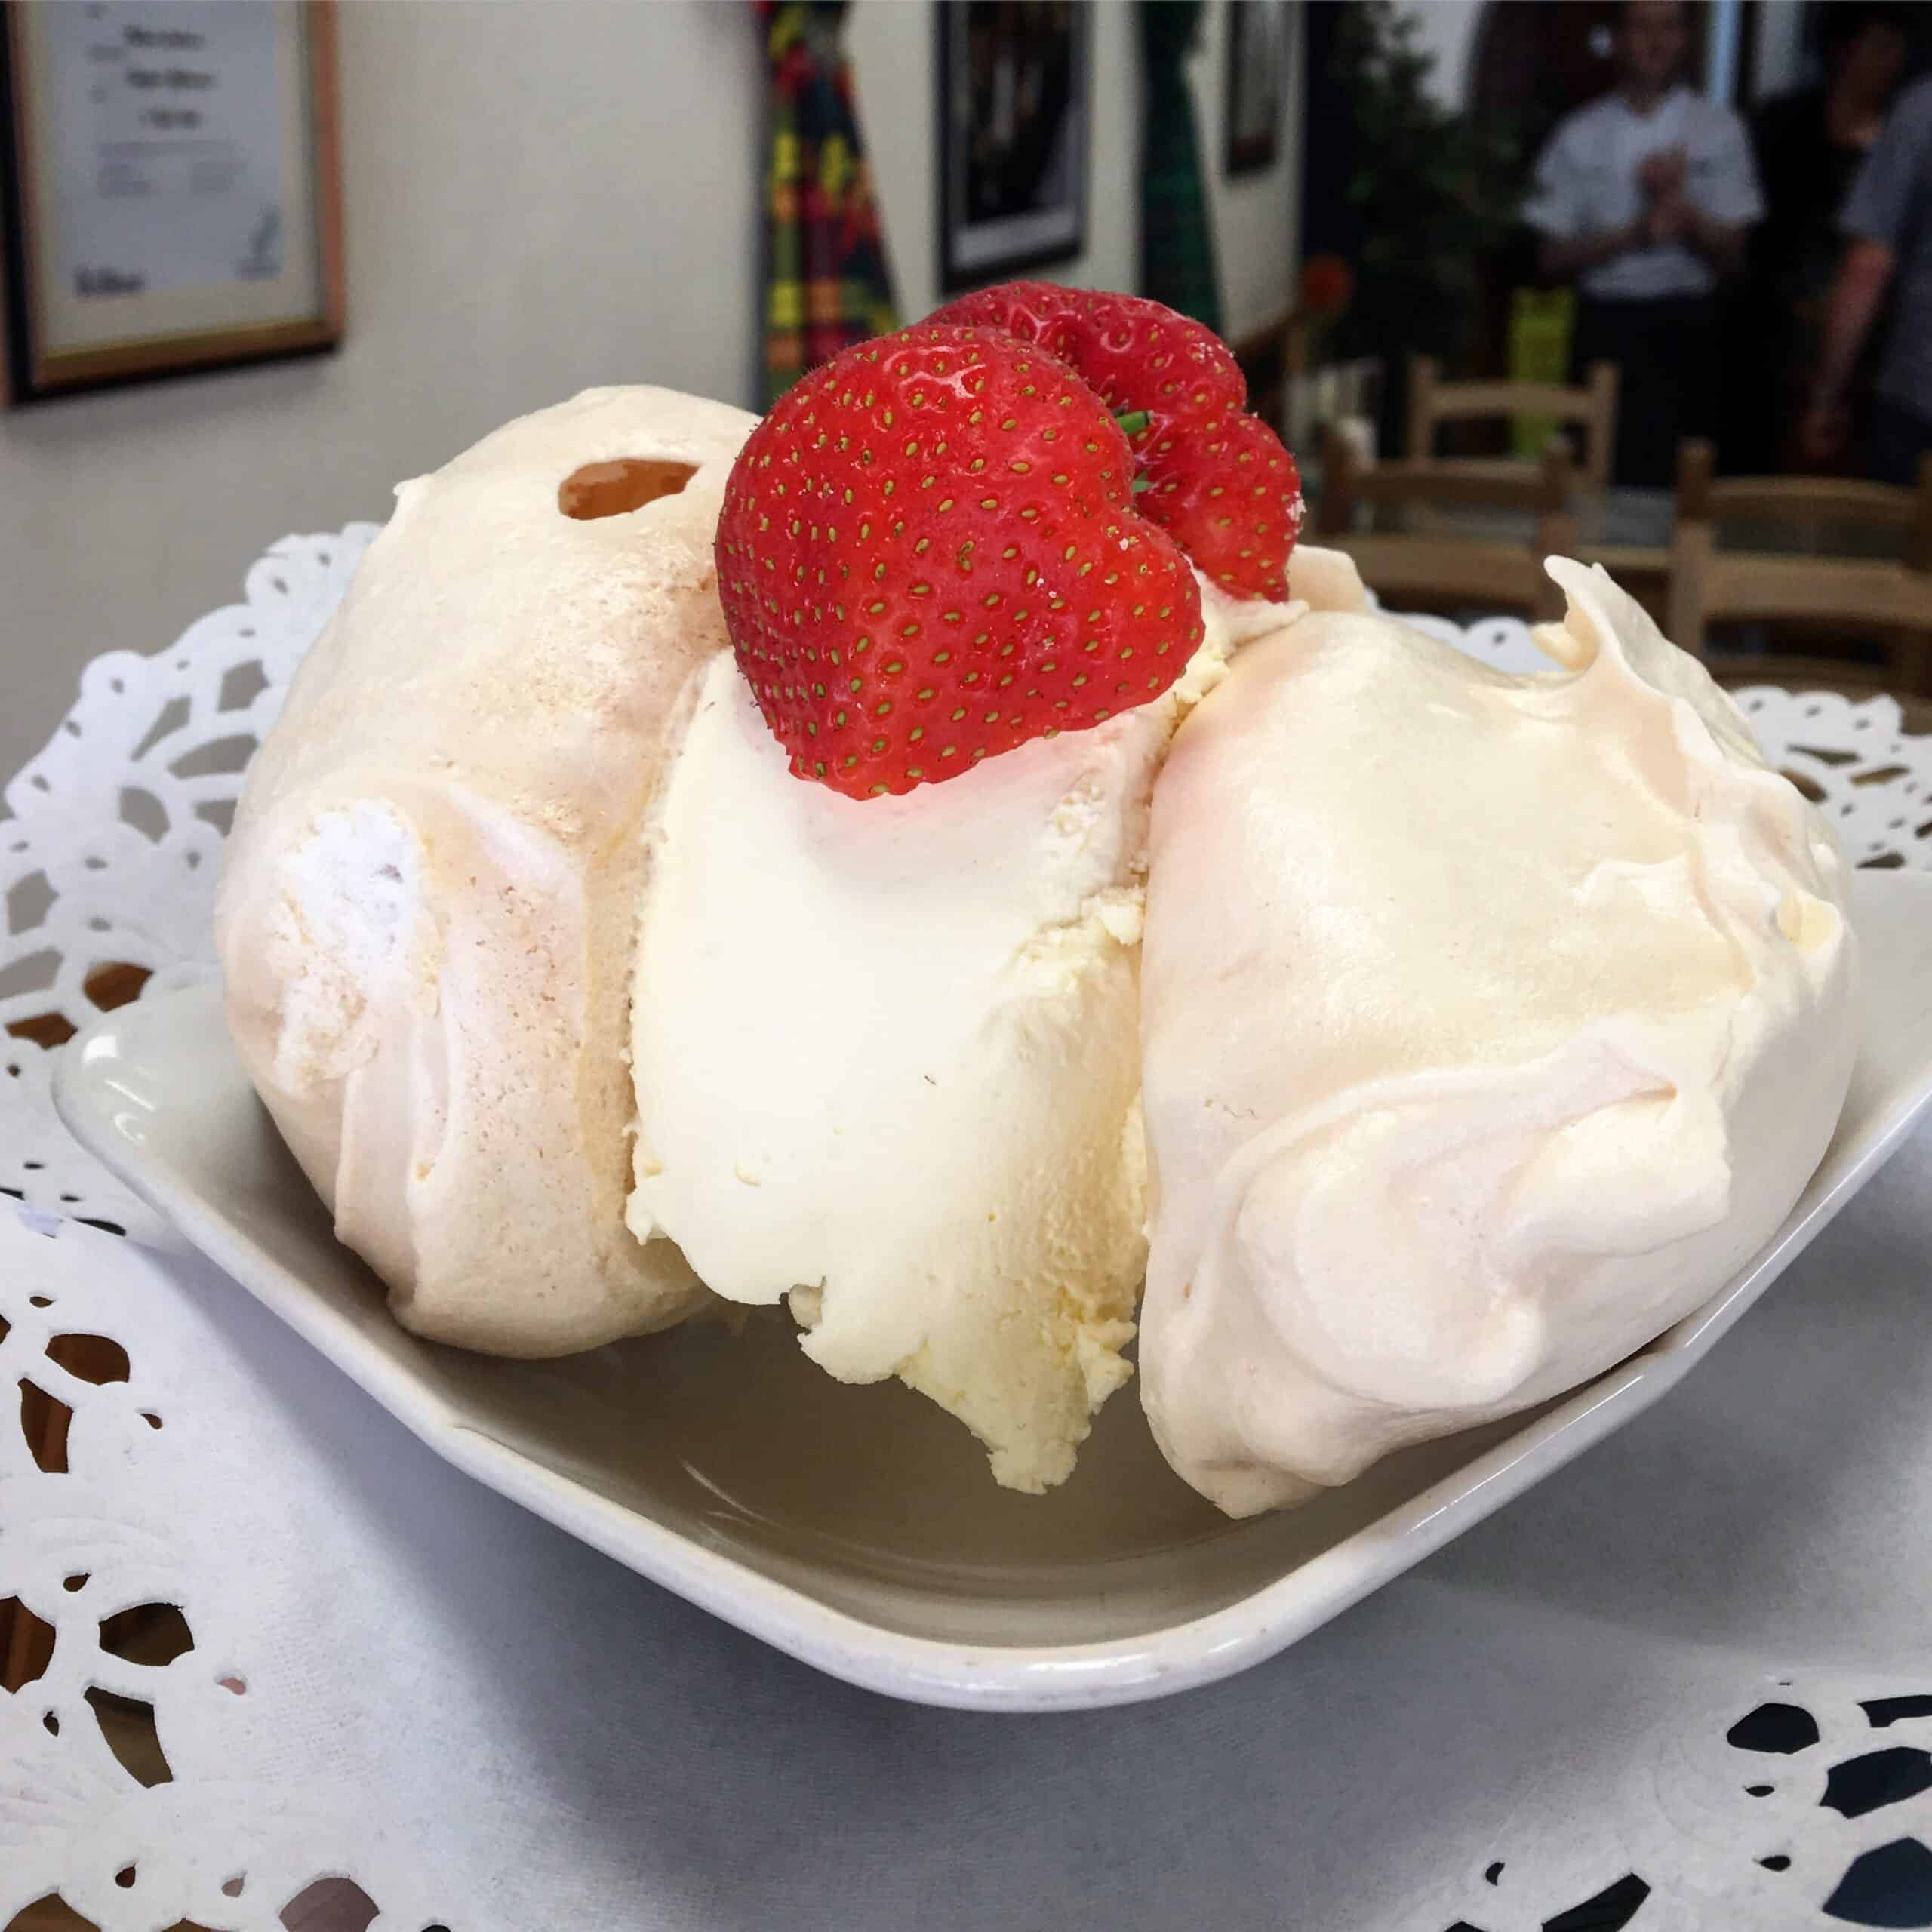 meringues sandwiched together with thick cream